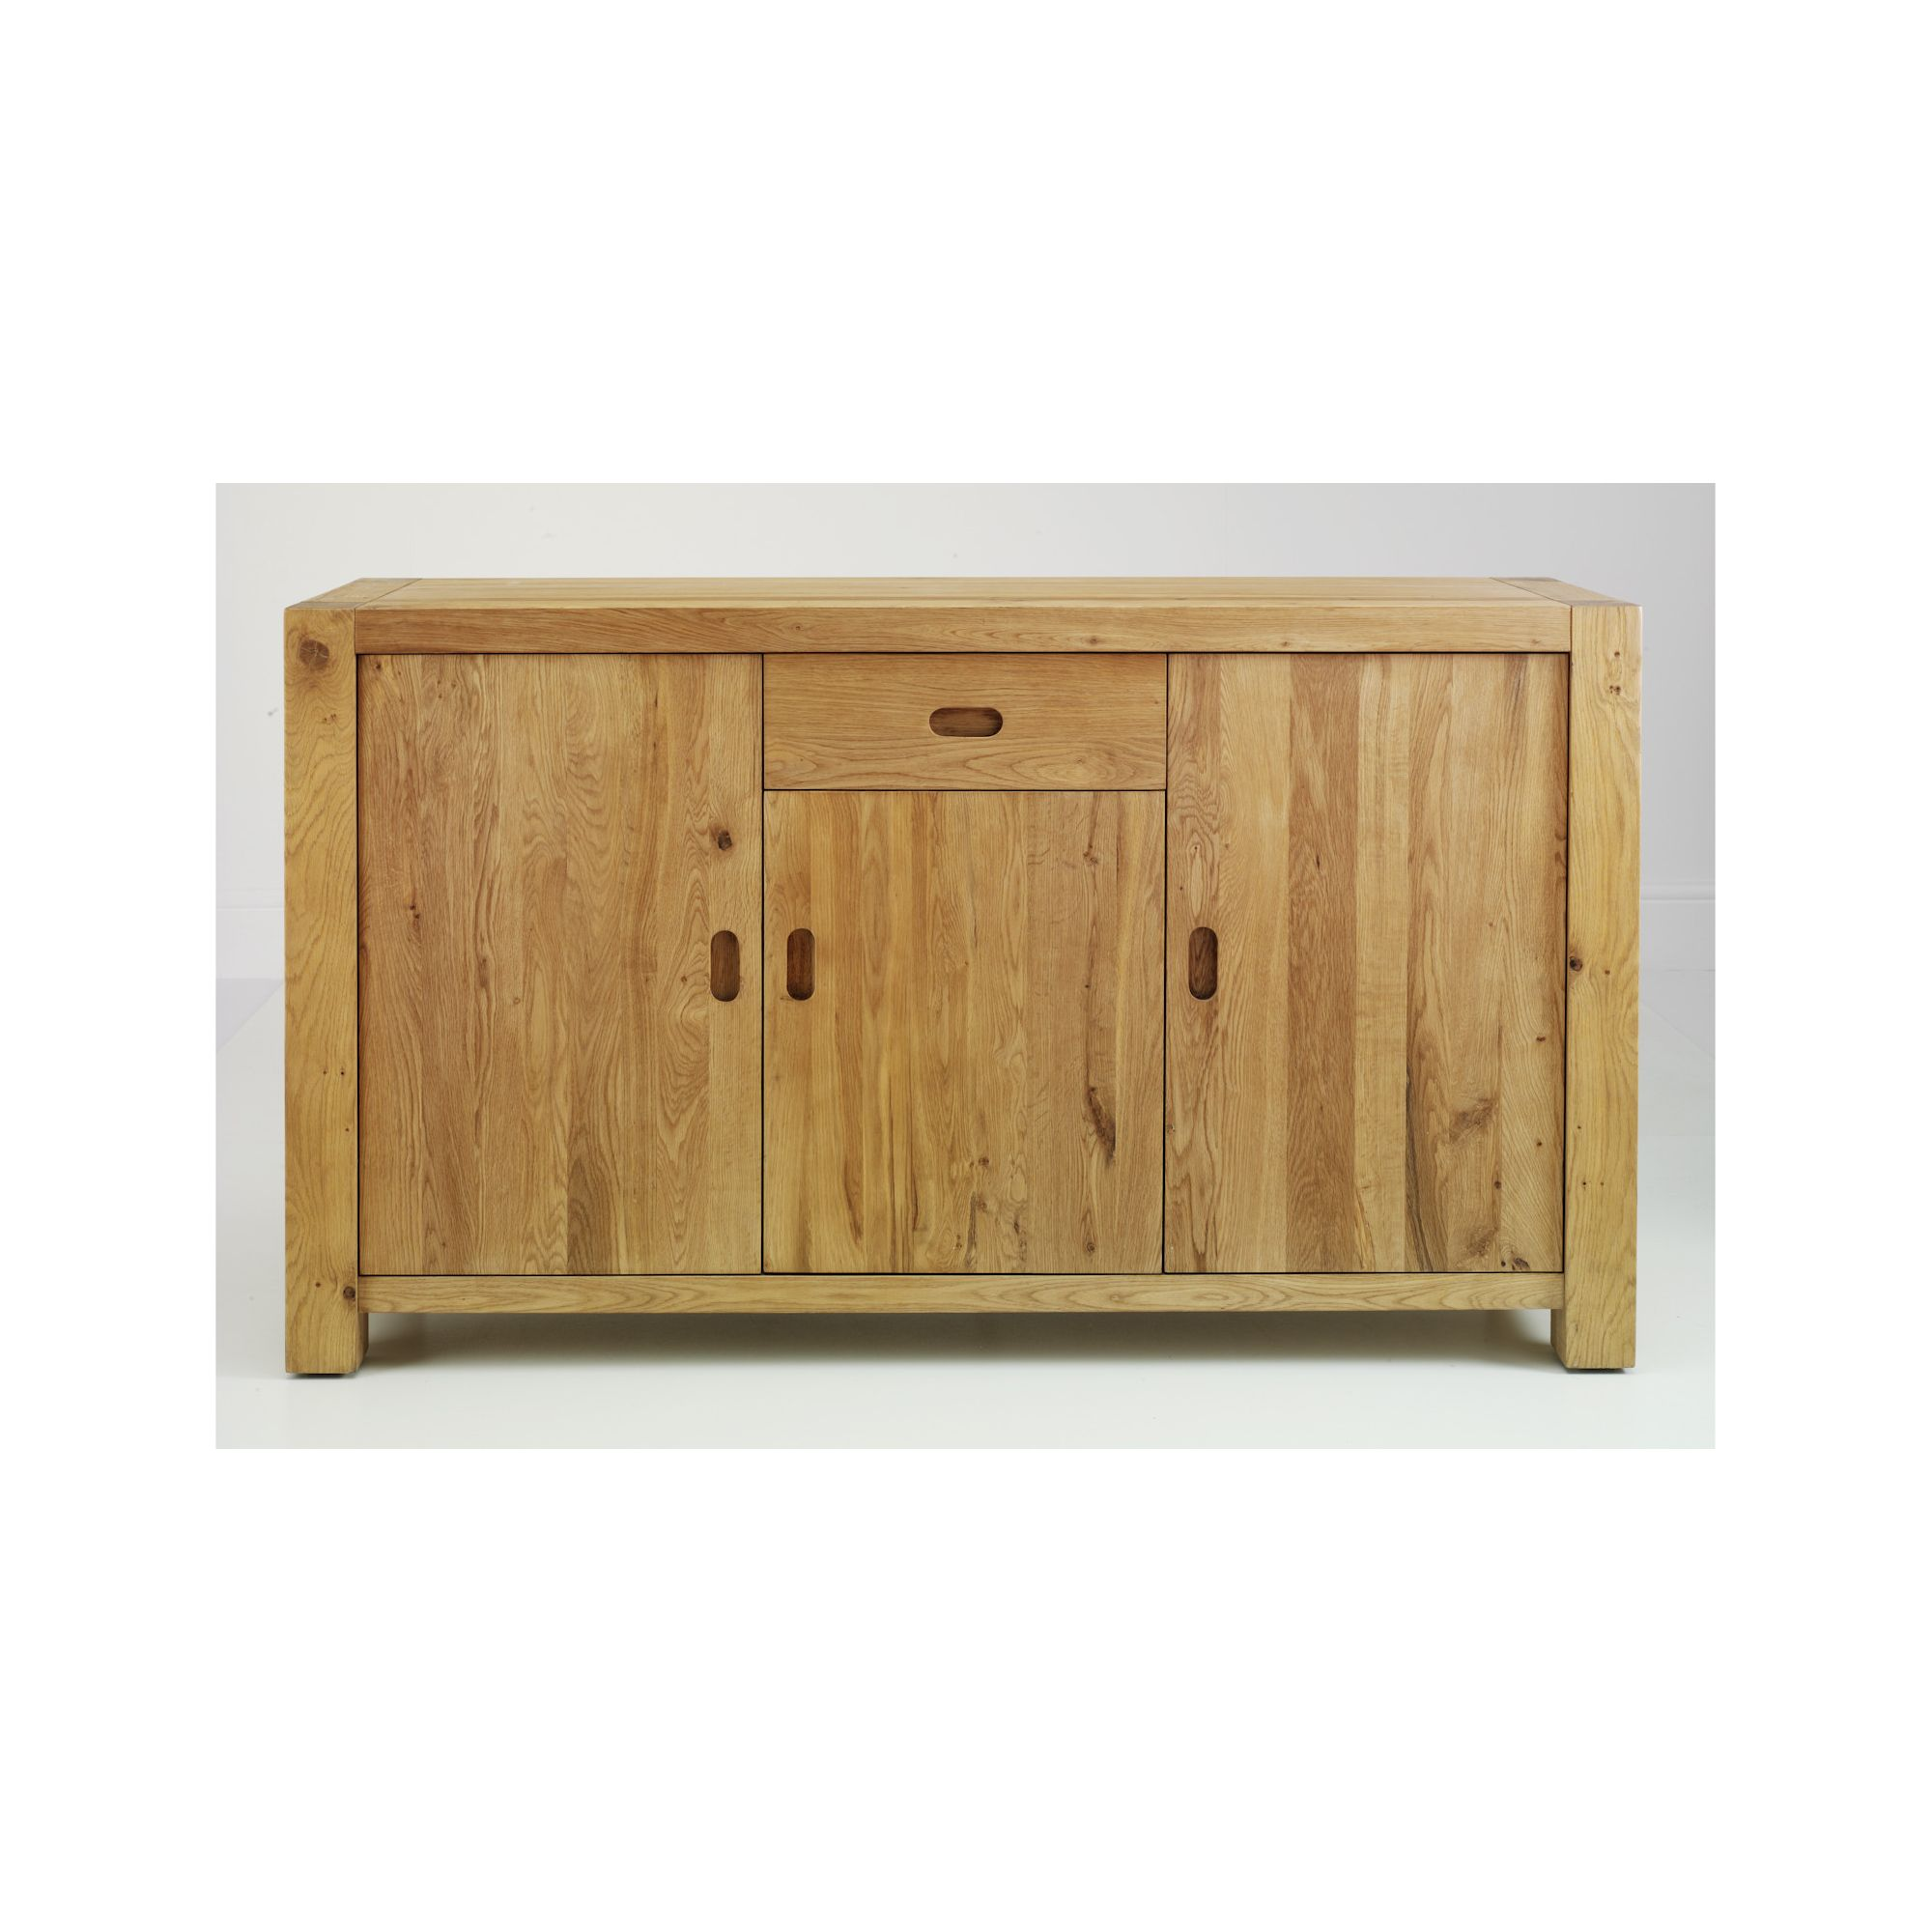 Originals UK Talin Dining Large Sideboard at Tesco Direct